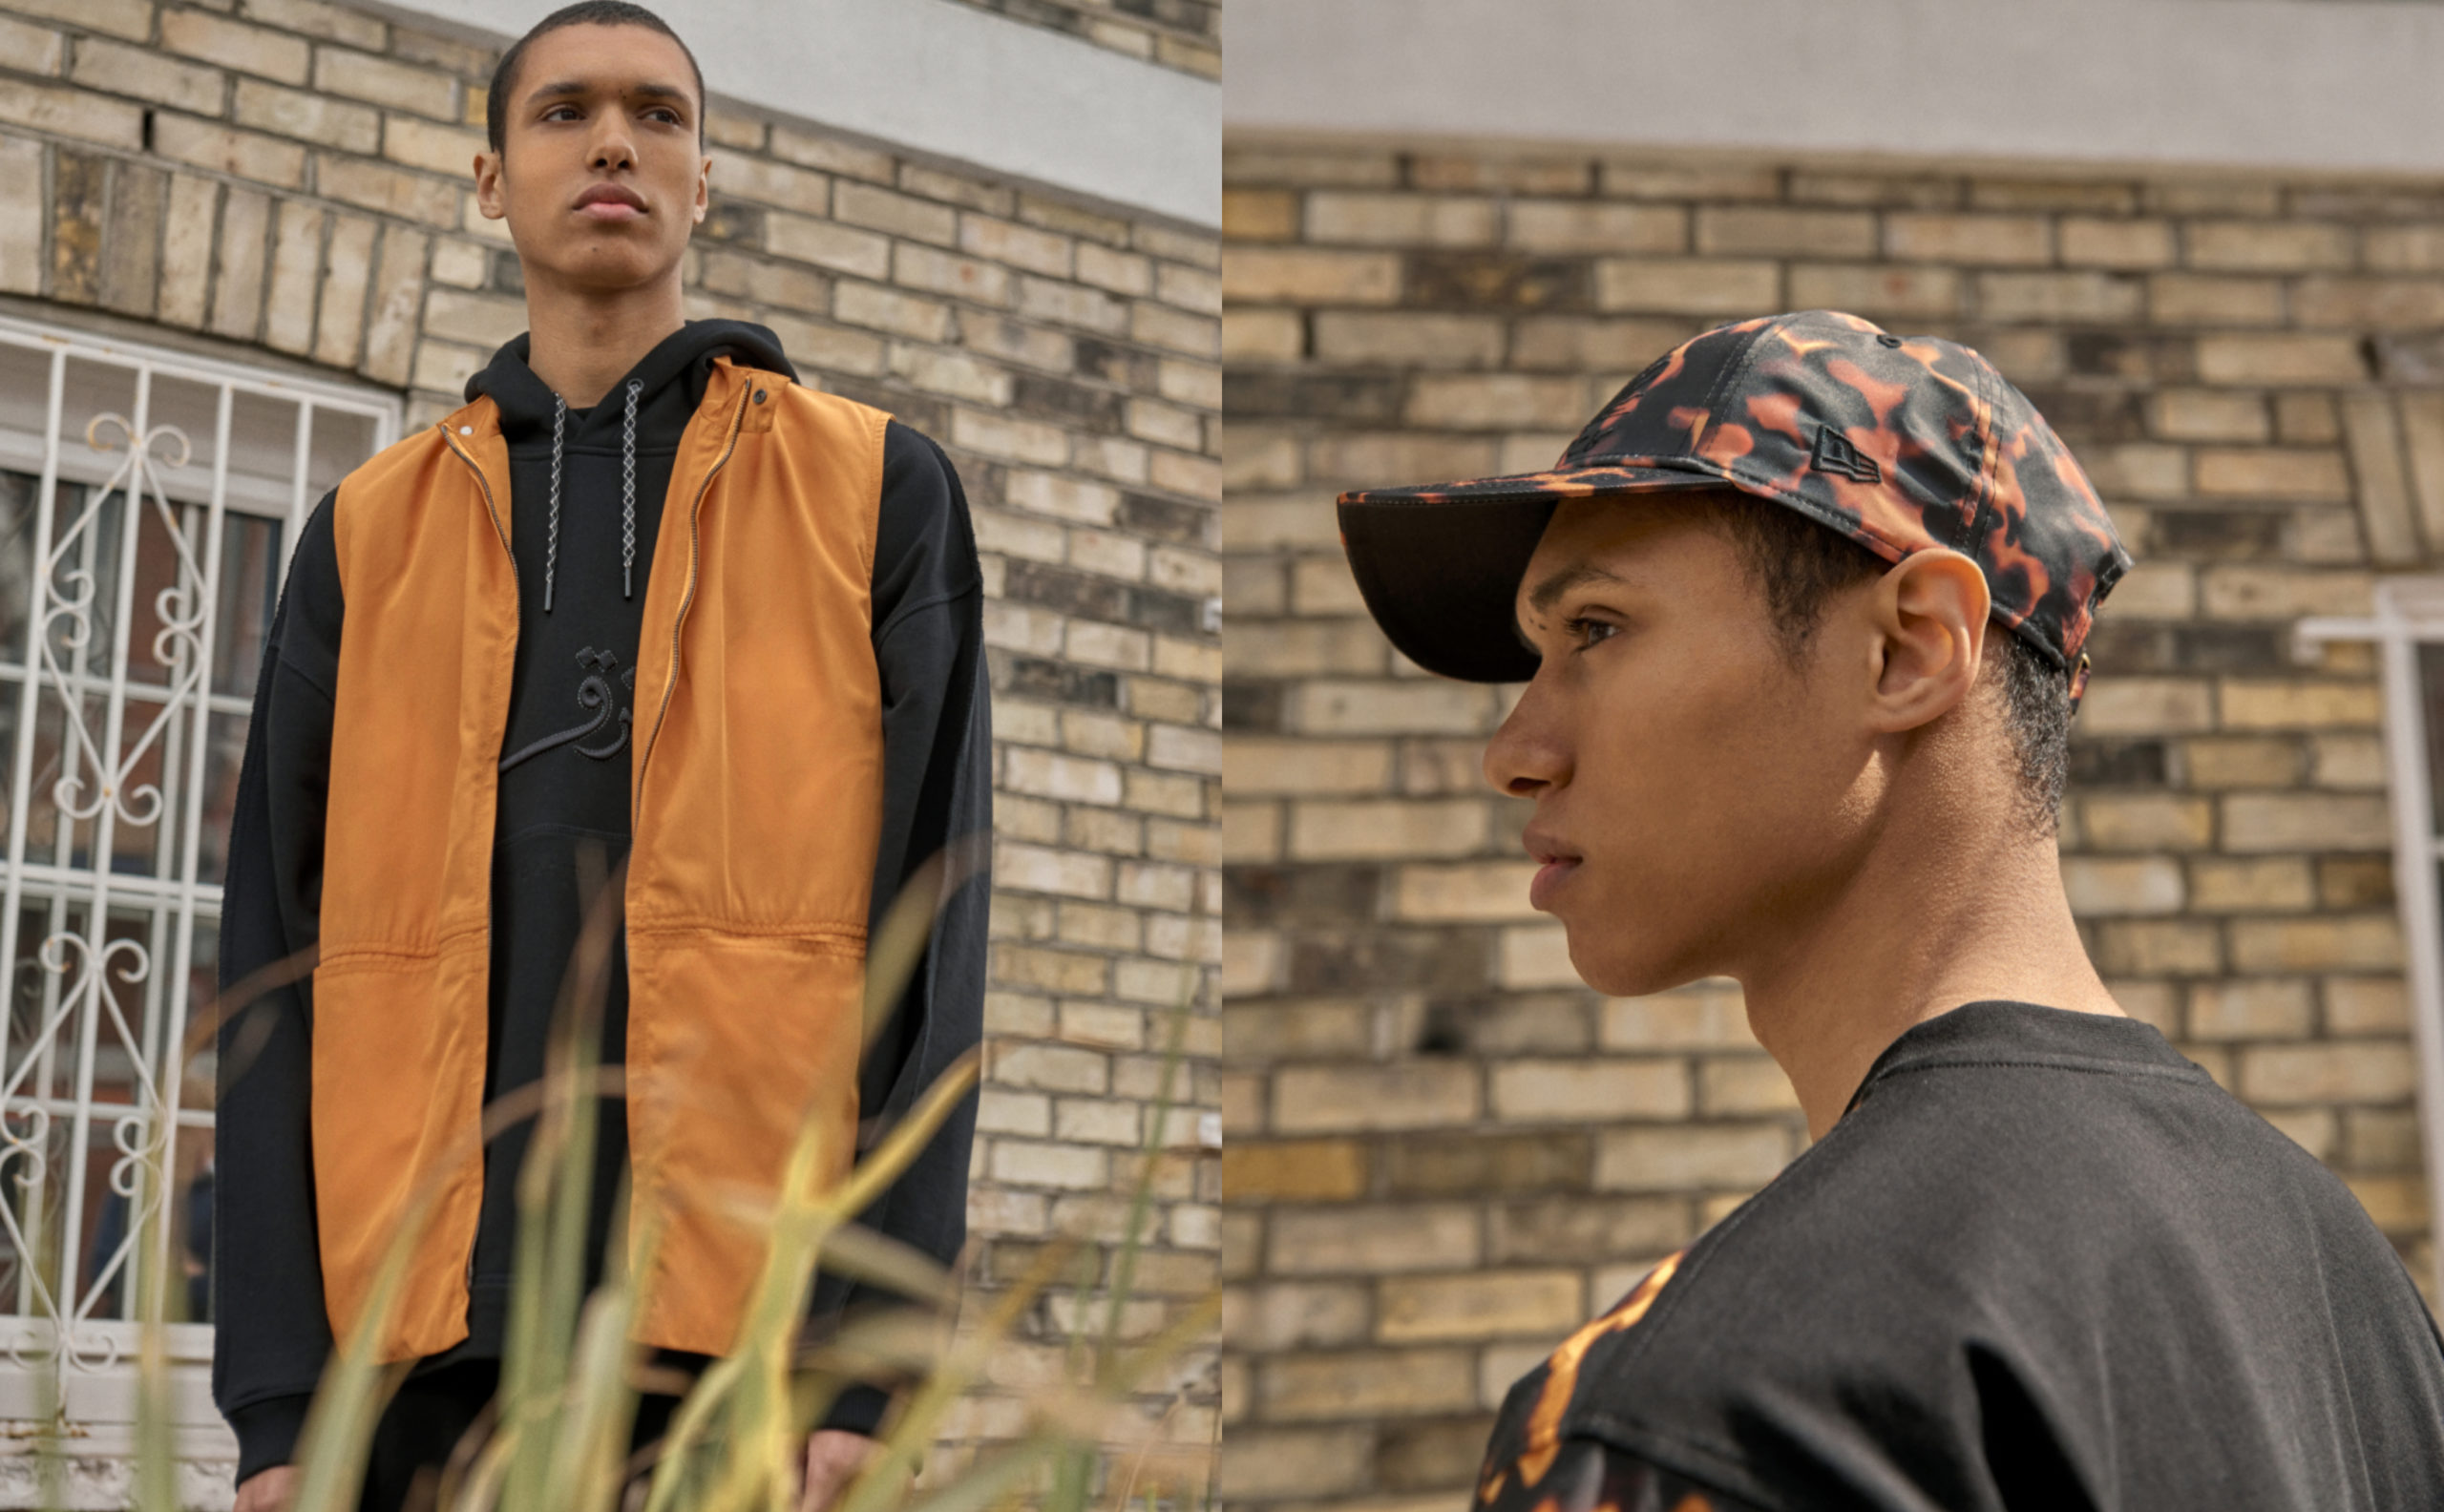 Qasimi's Latest Collection Includes a New Era Collab